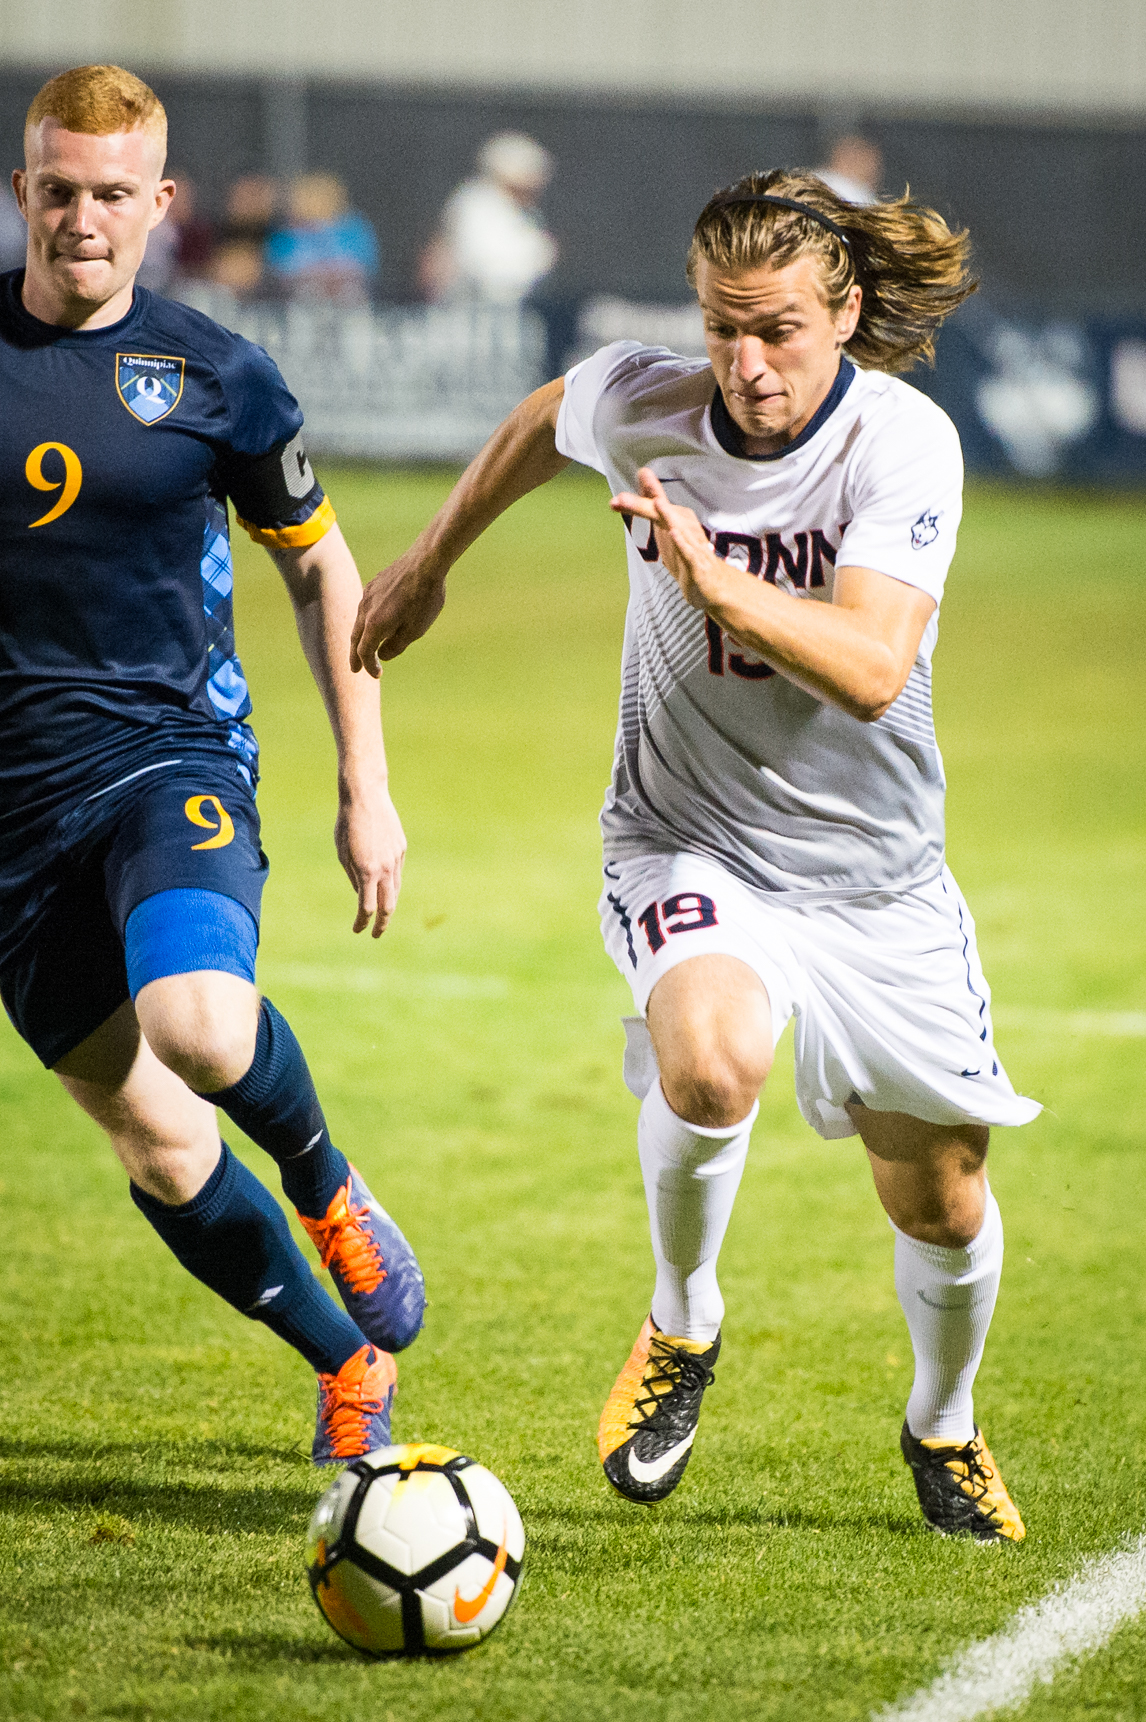 UConn Mens Soccer #9441 August 29, 2017.jpg